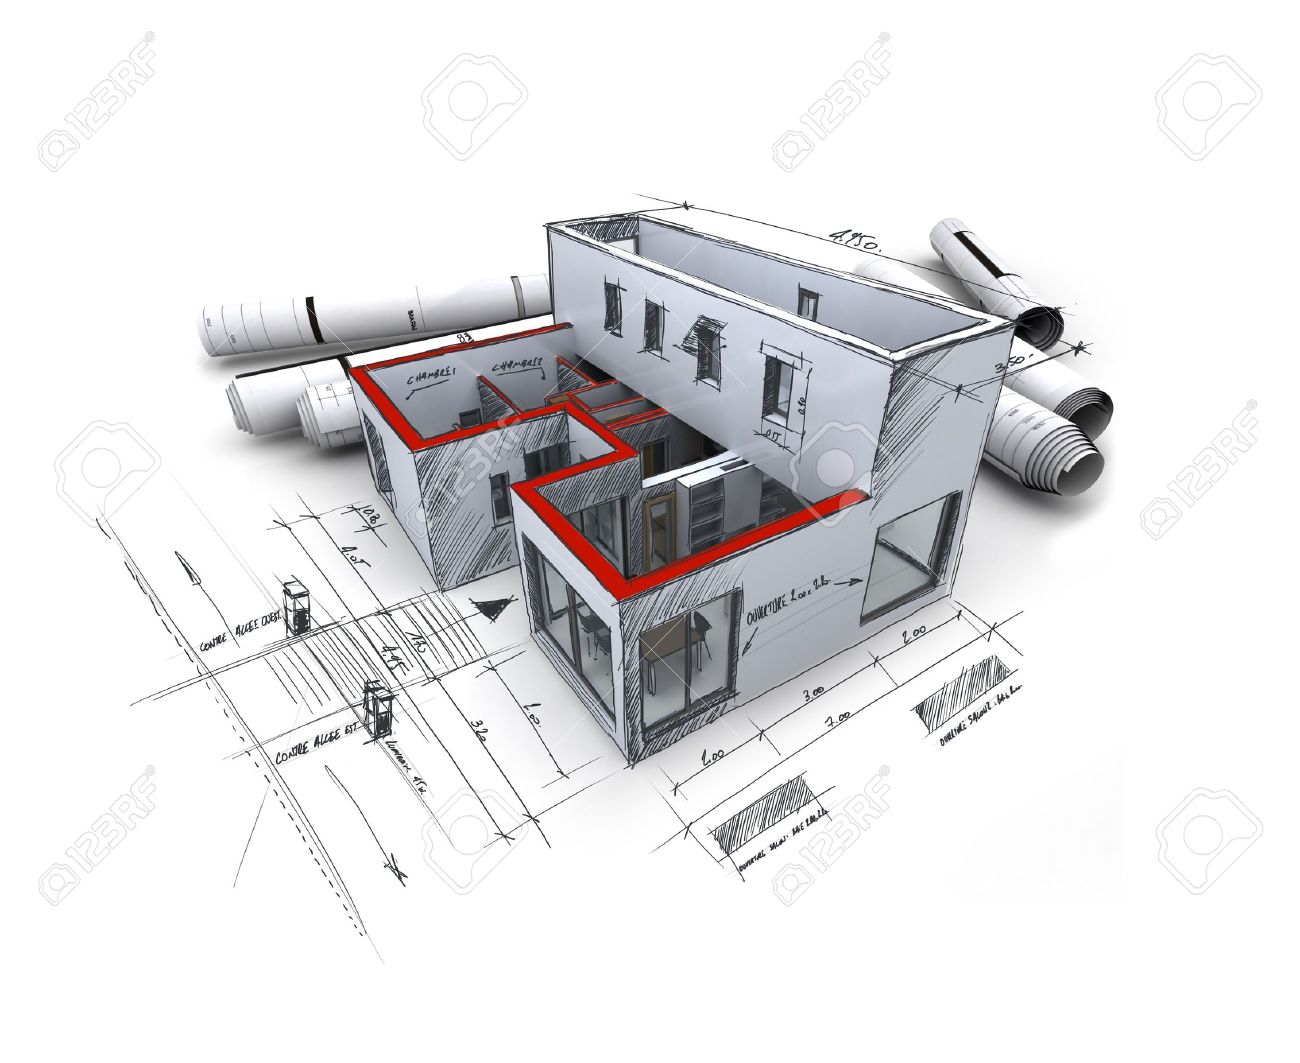 Architecture Blueprints 3d Rendering Of An Model With Rolled Up